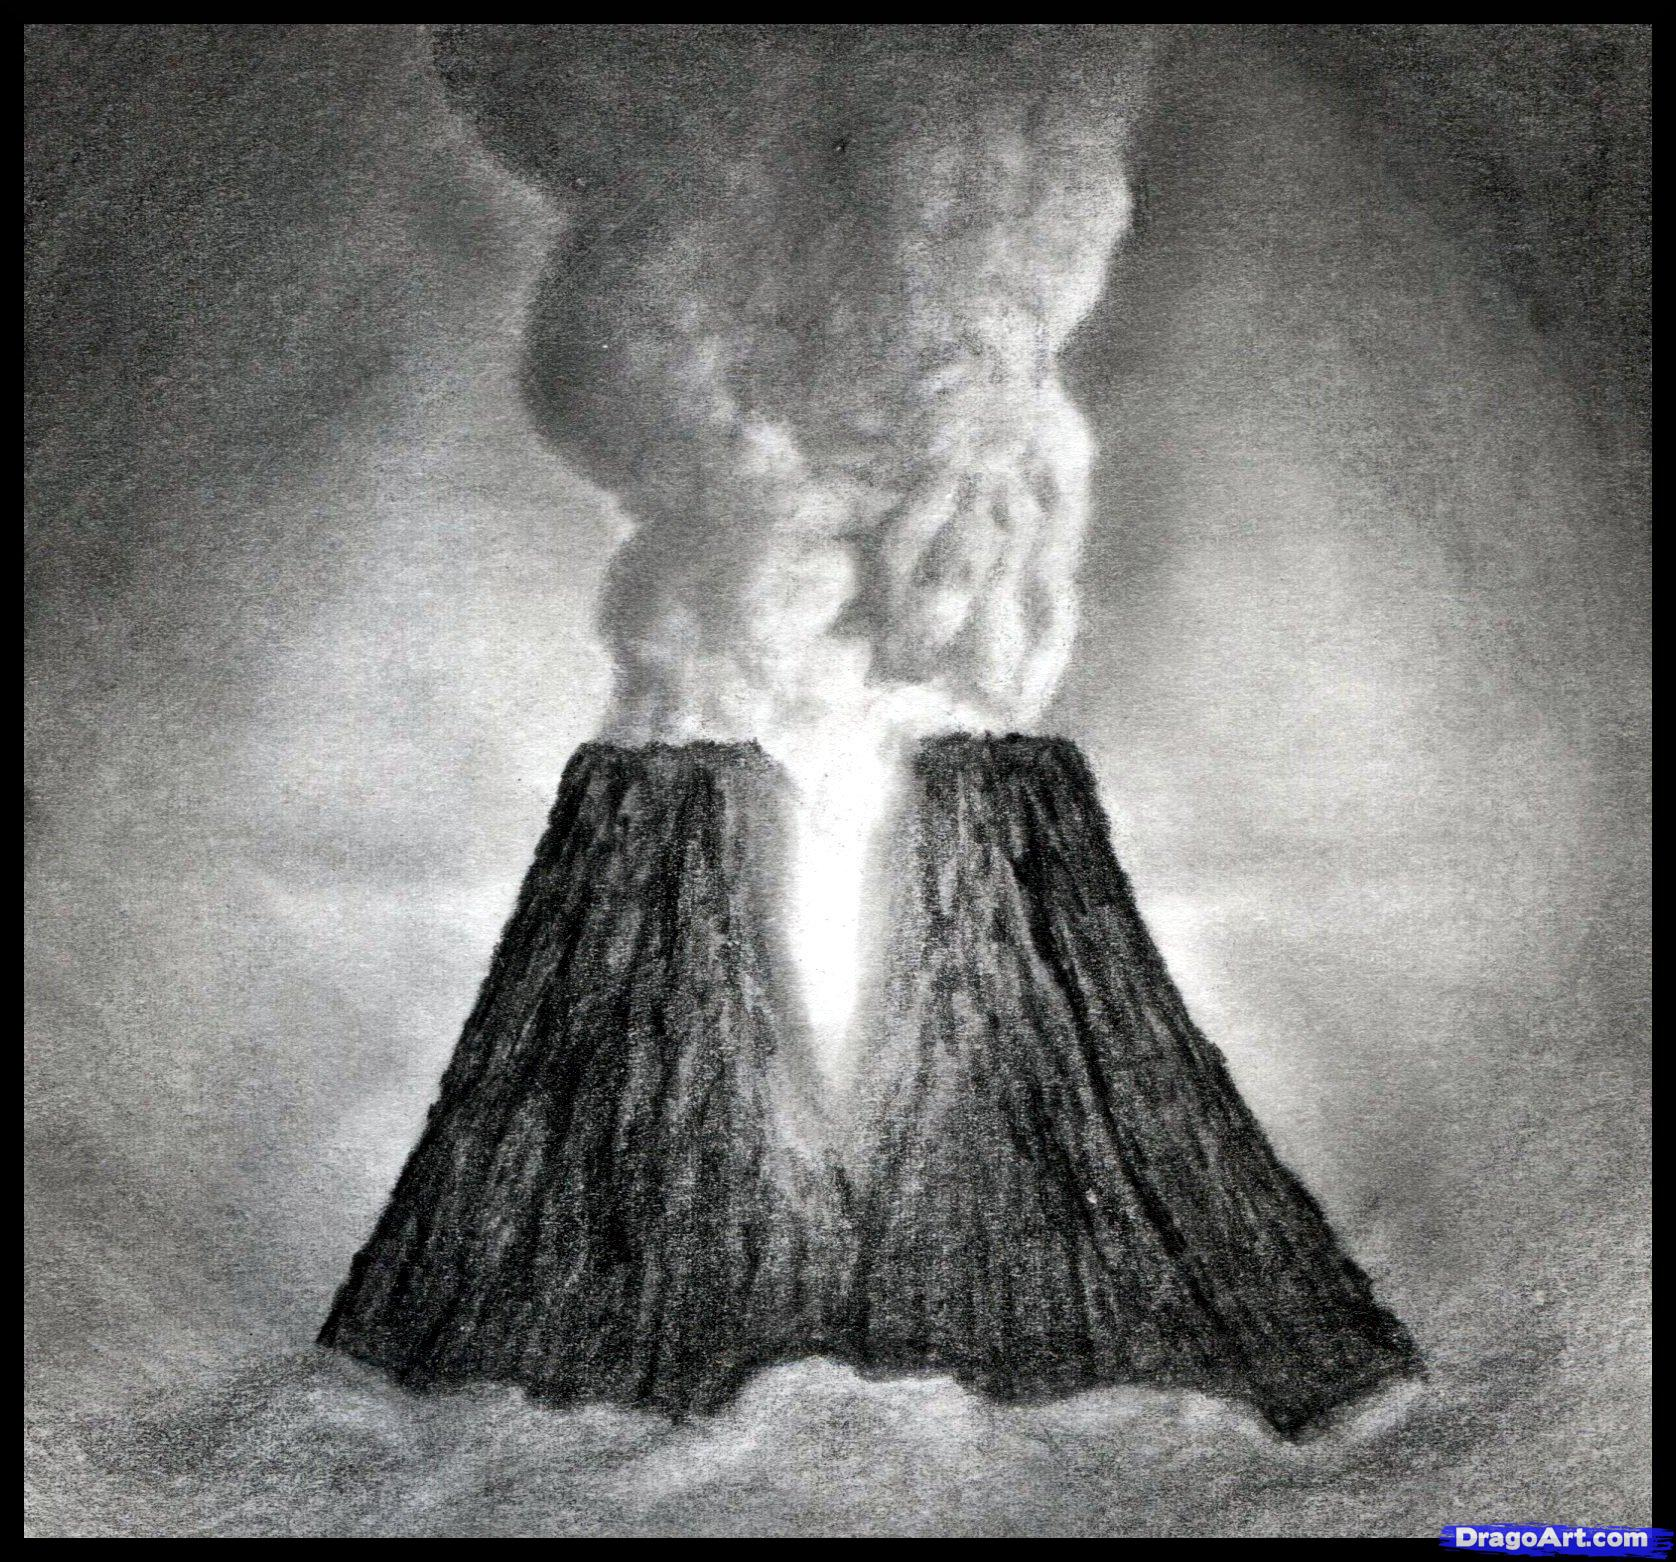 Drawn volcano realistic Volcanoes Draw to Volcanoes to